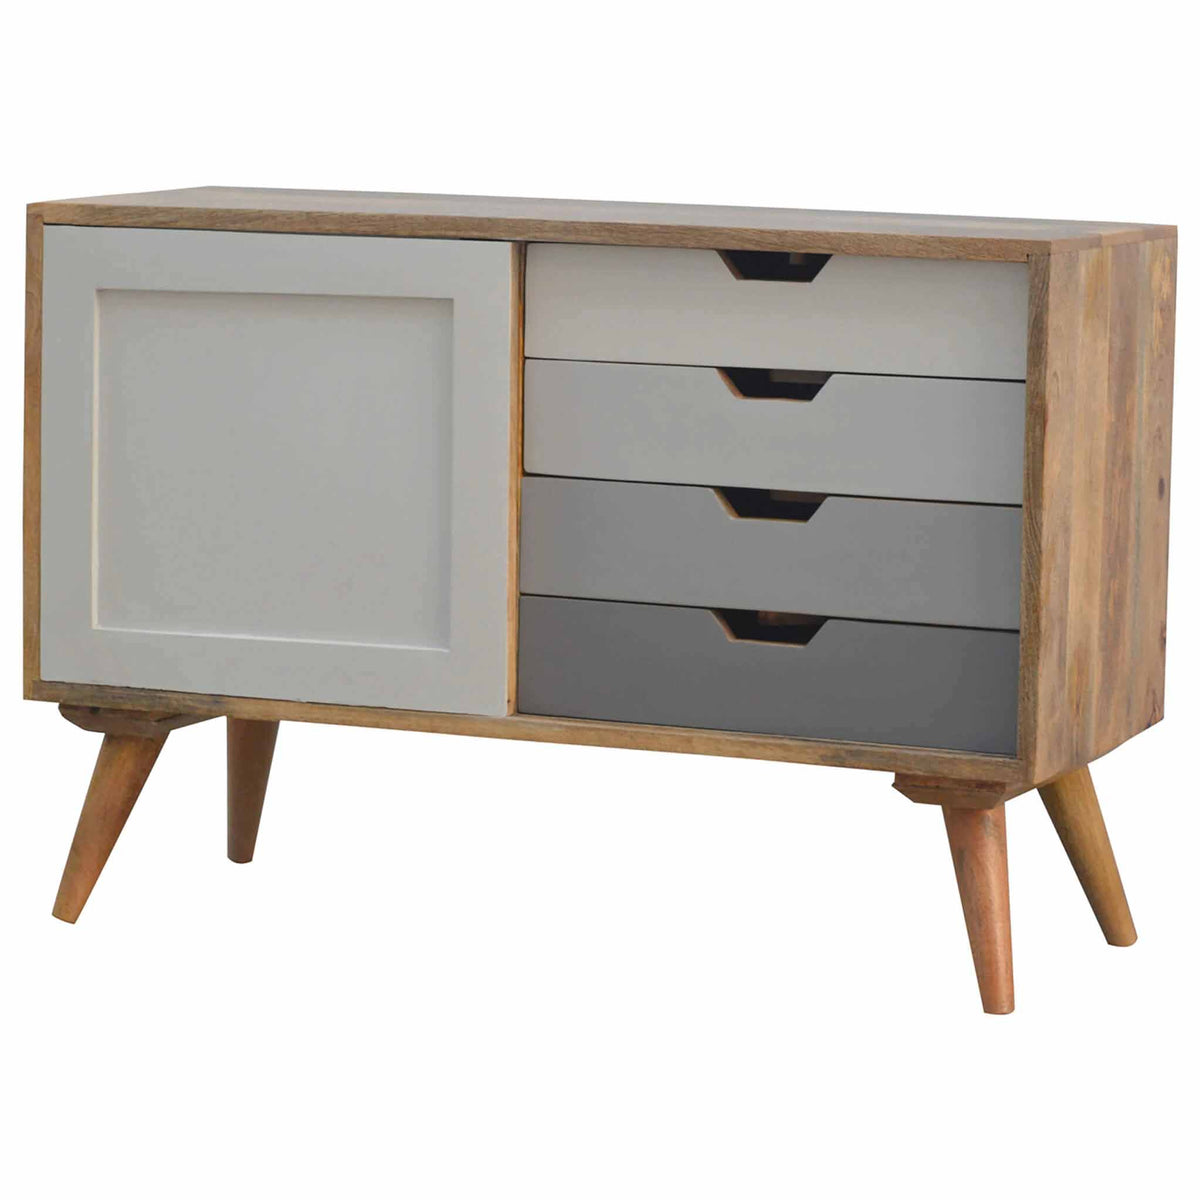 Artisan Nordic Cabinet with 4 Drawers & Sliding Door